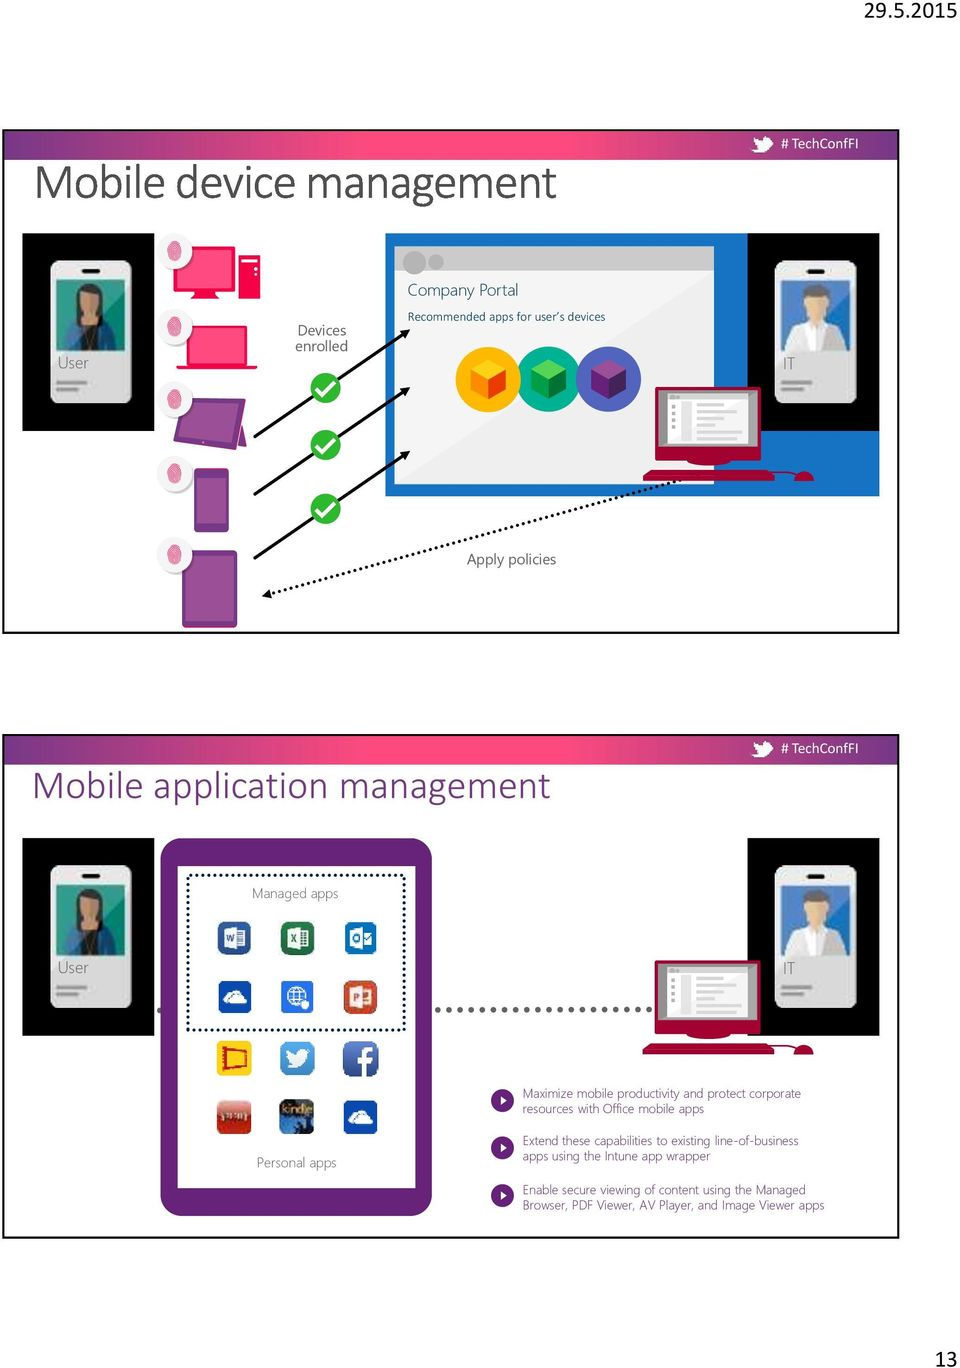 apps Personal apps Personal apps Extend these capabilities to existing line-of-business apps using the Intune